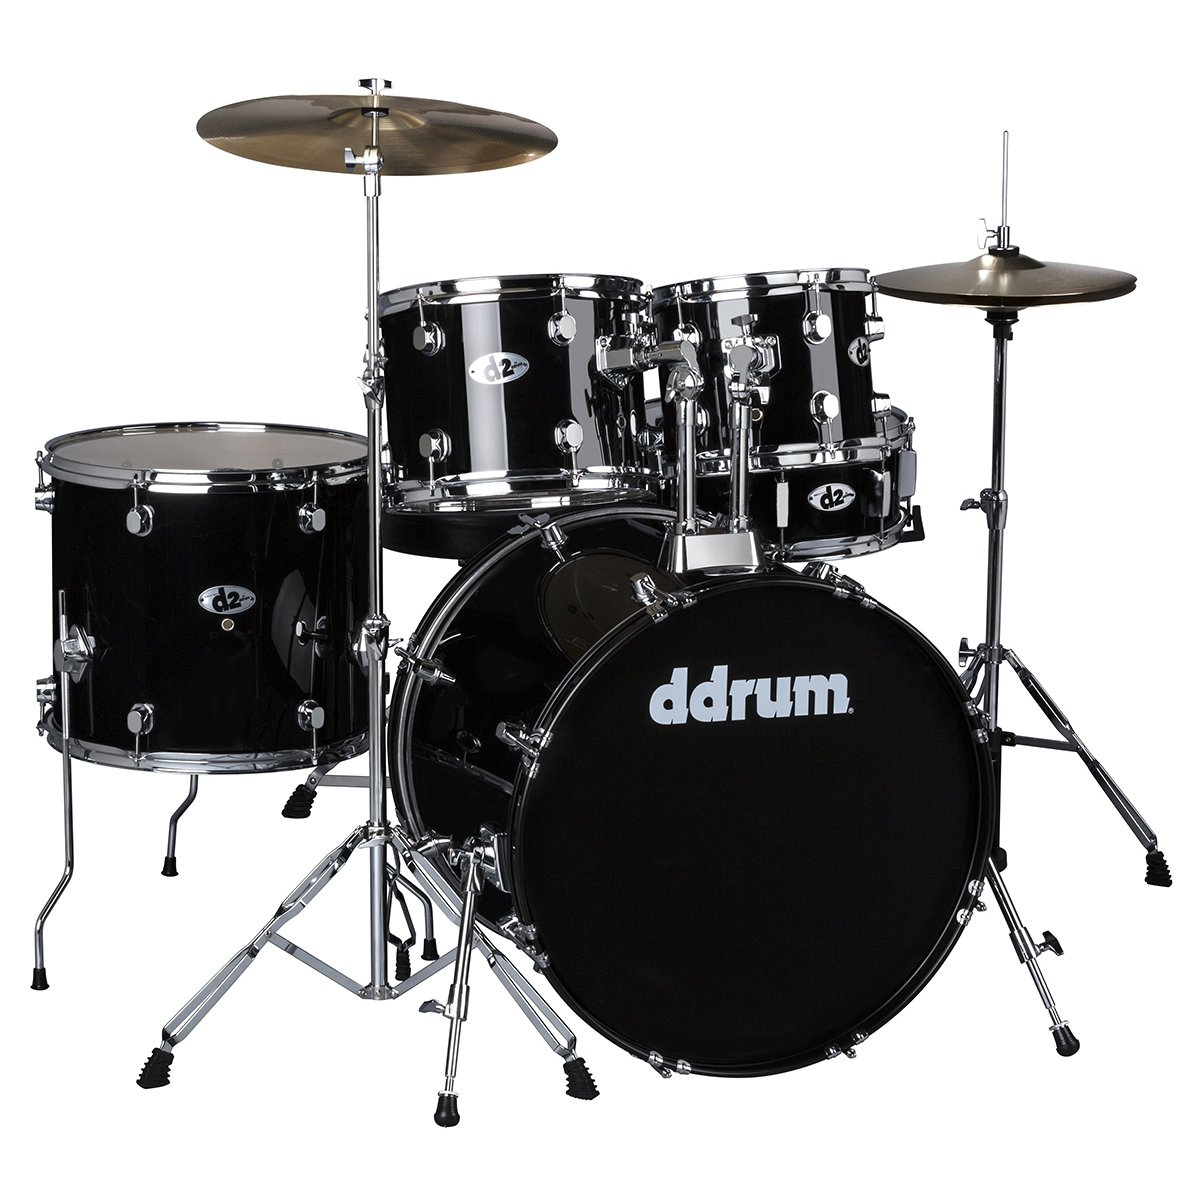 DDRUM D2 Drum Set 5 pc Complete with Hardware, Cymbals, Sticks, Throne - Midnight Black